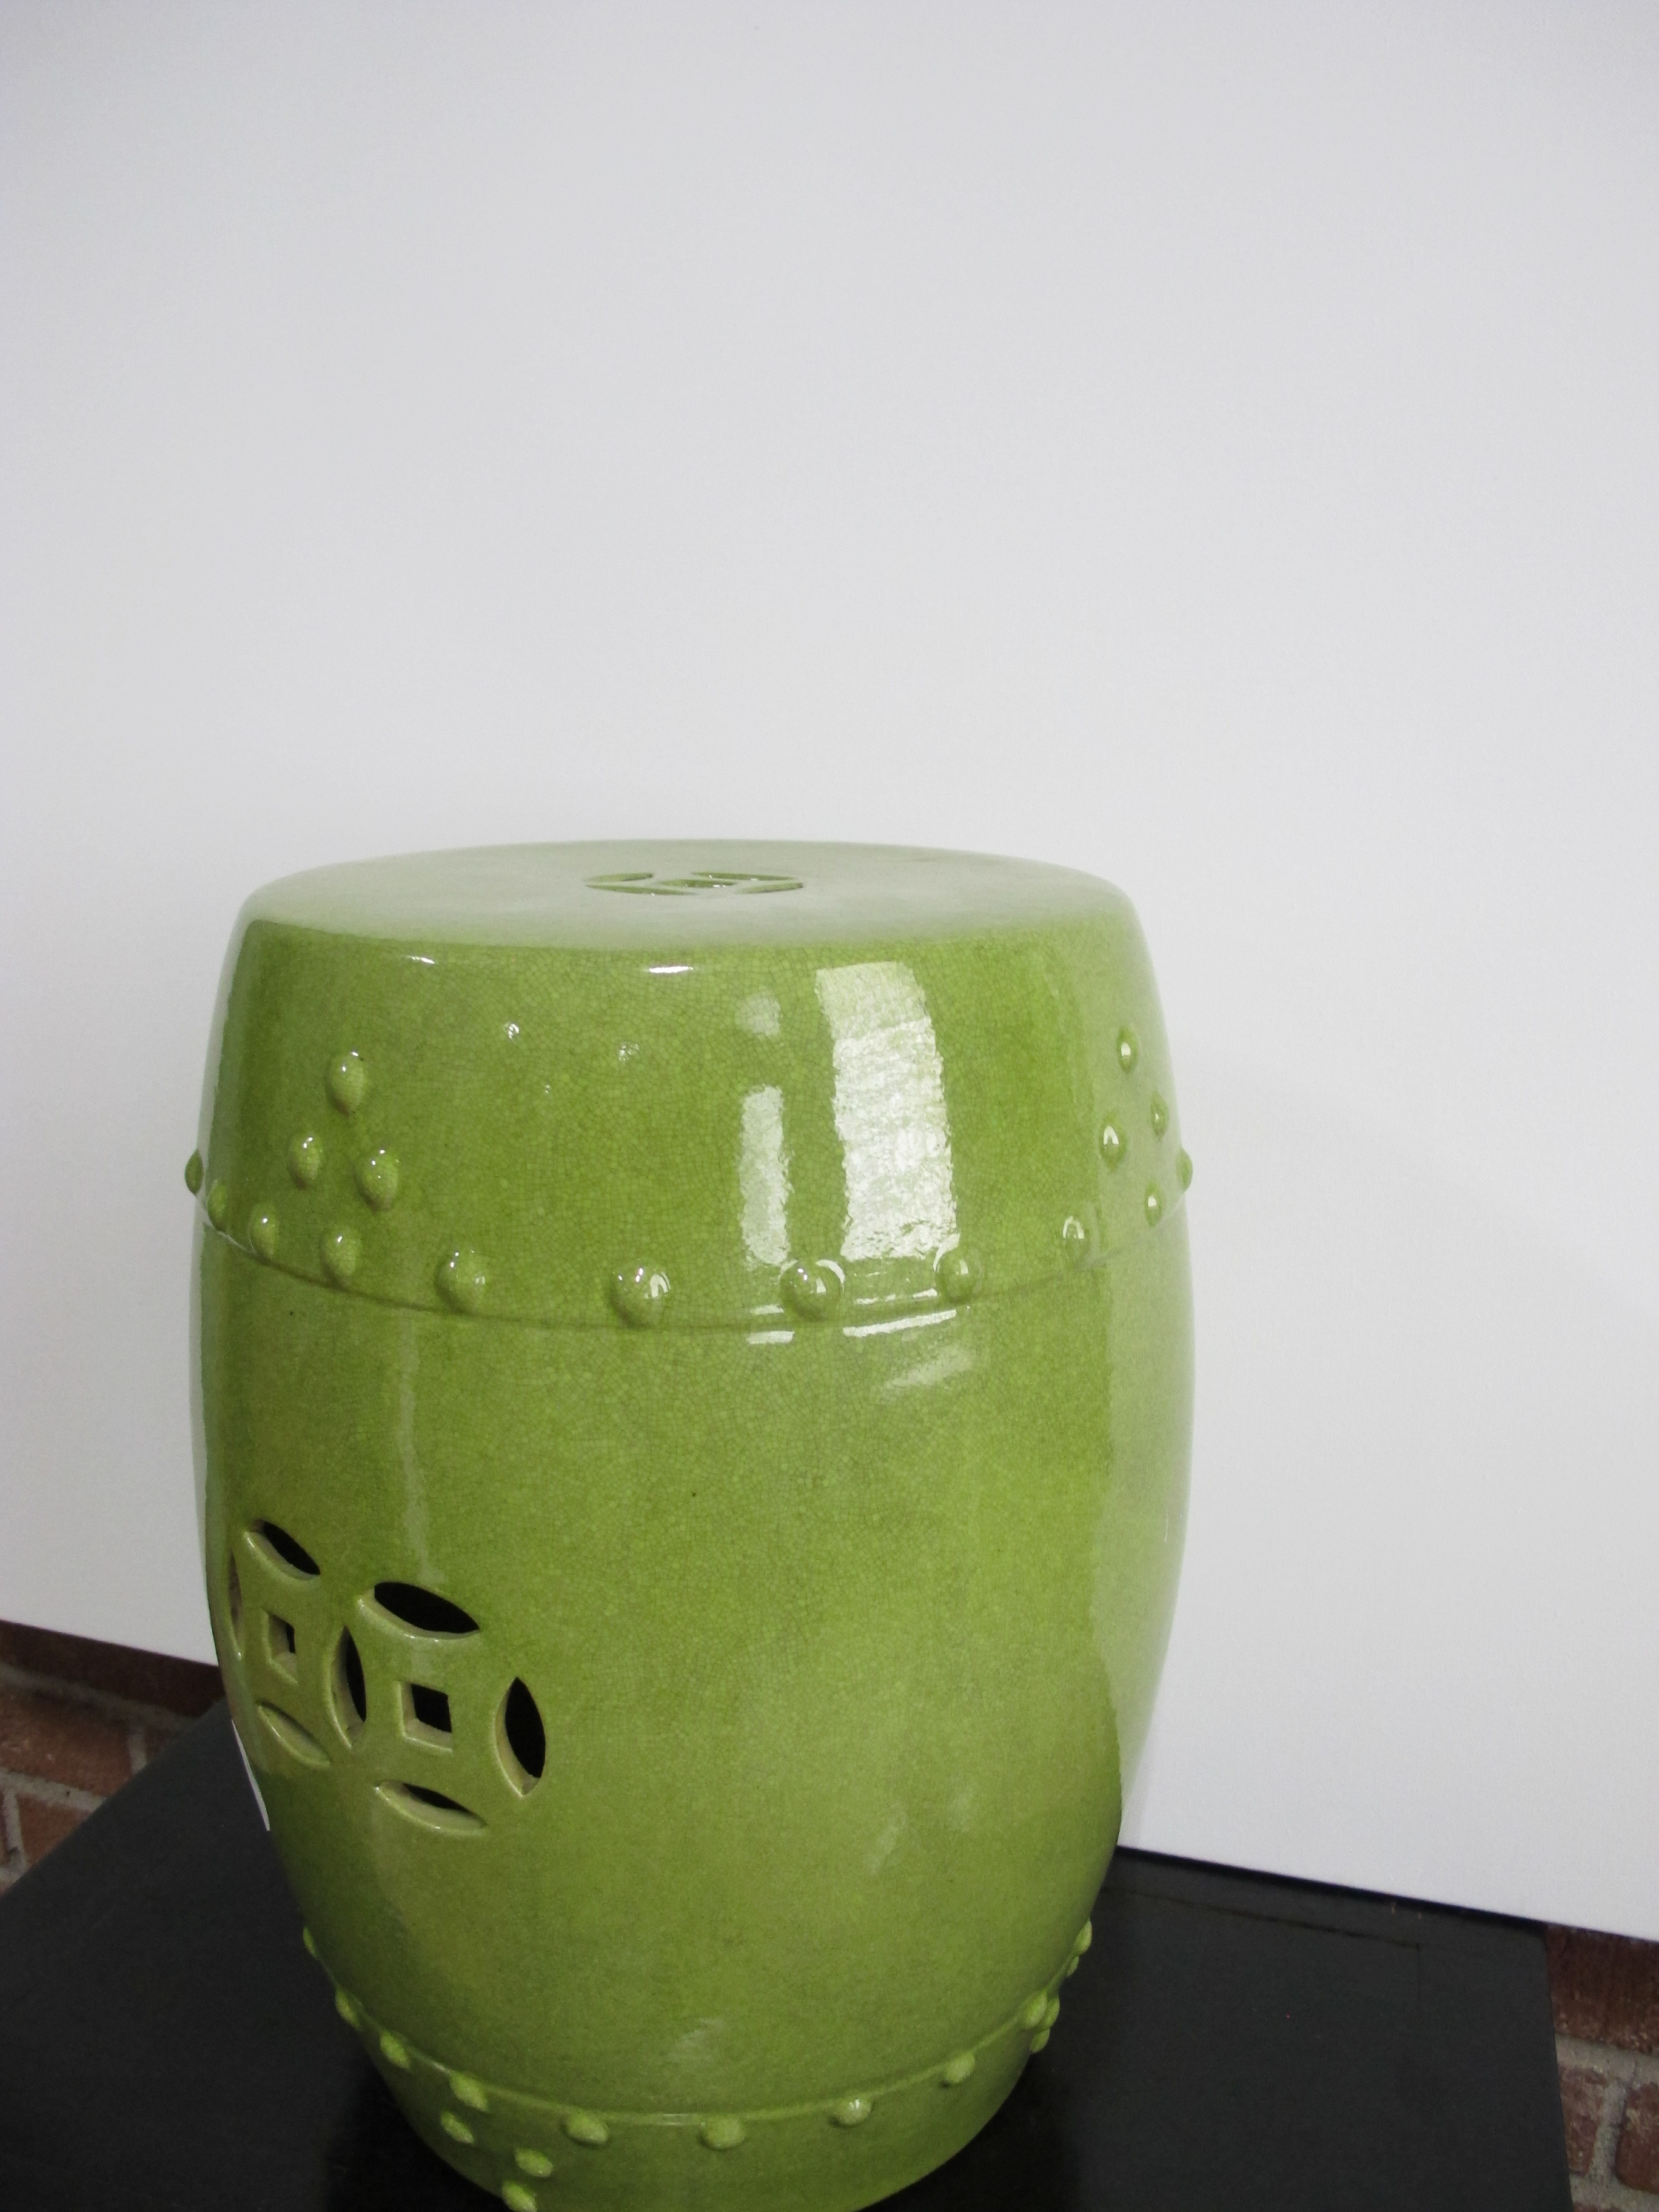 Charmant Chinese Lime Green Garden Stool For Sale. As Fresh As The Name Suggests, A  Lime. Perky Is The Name Of The